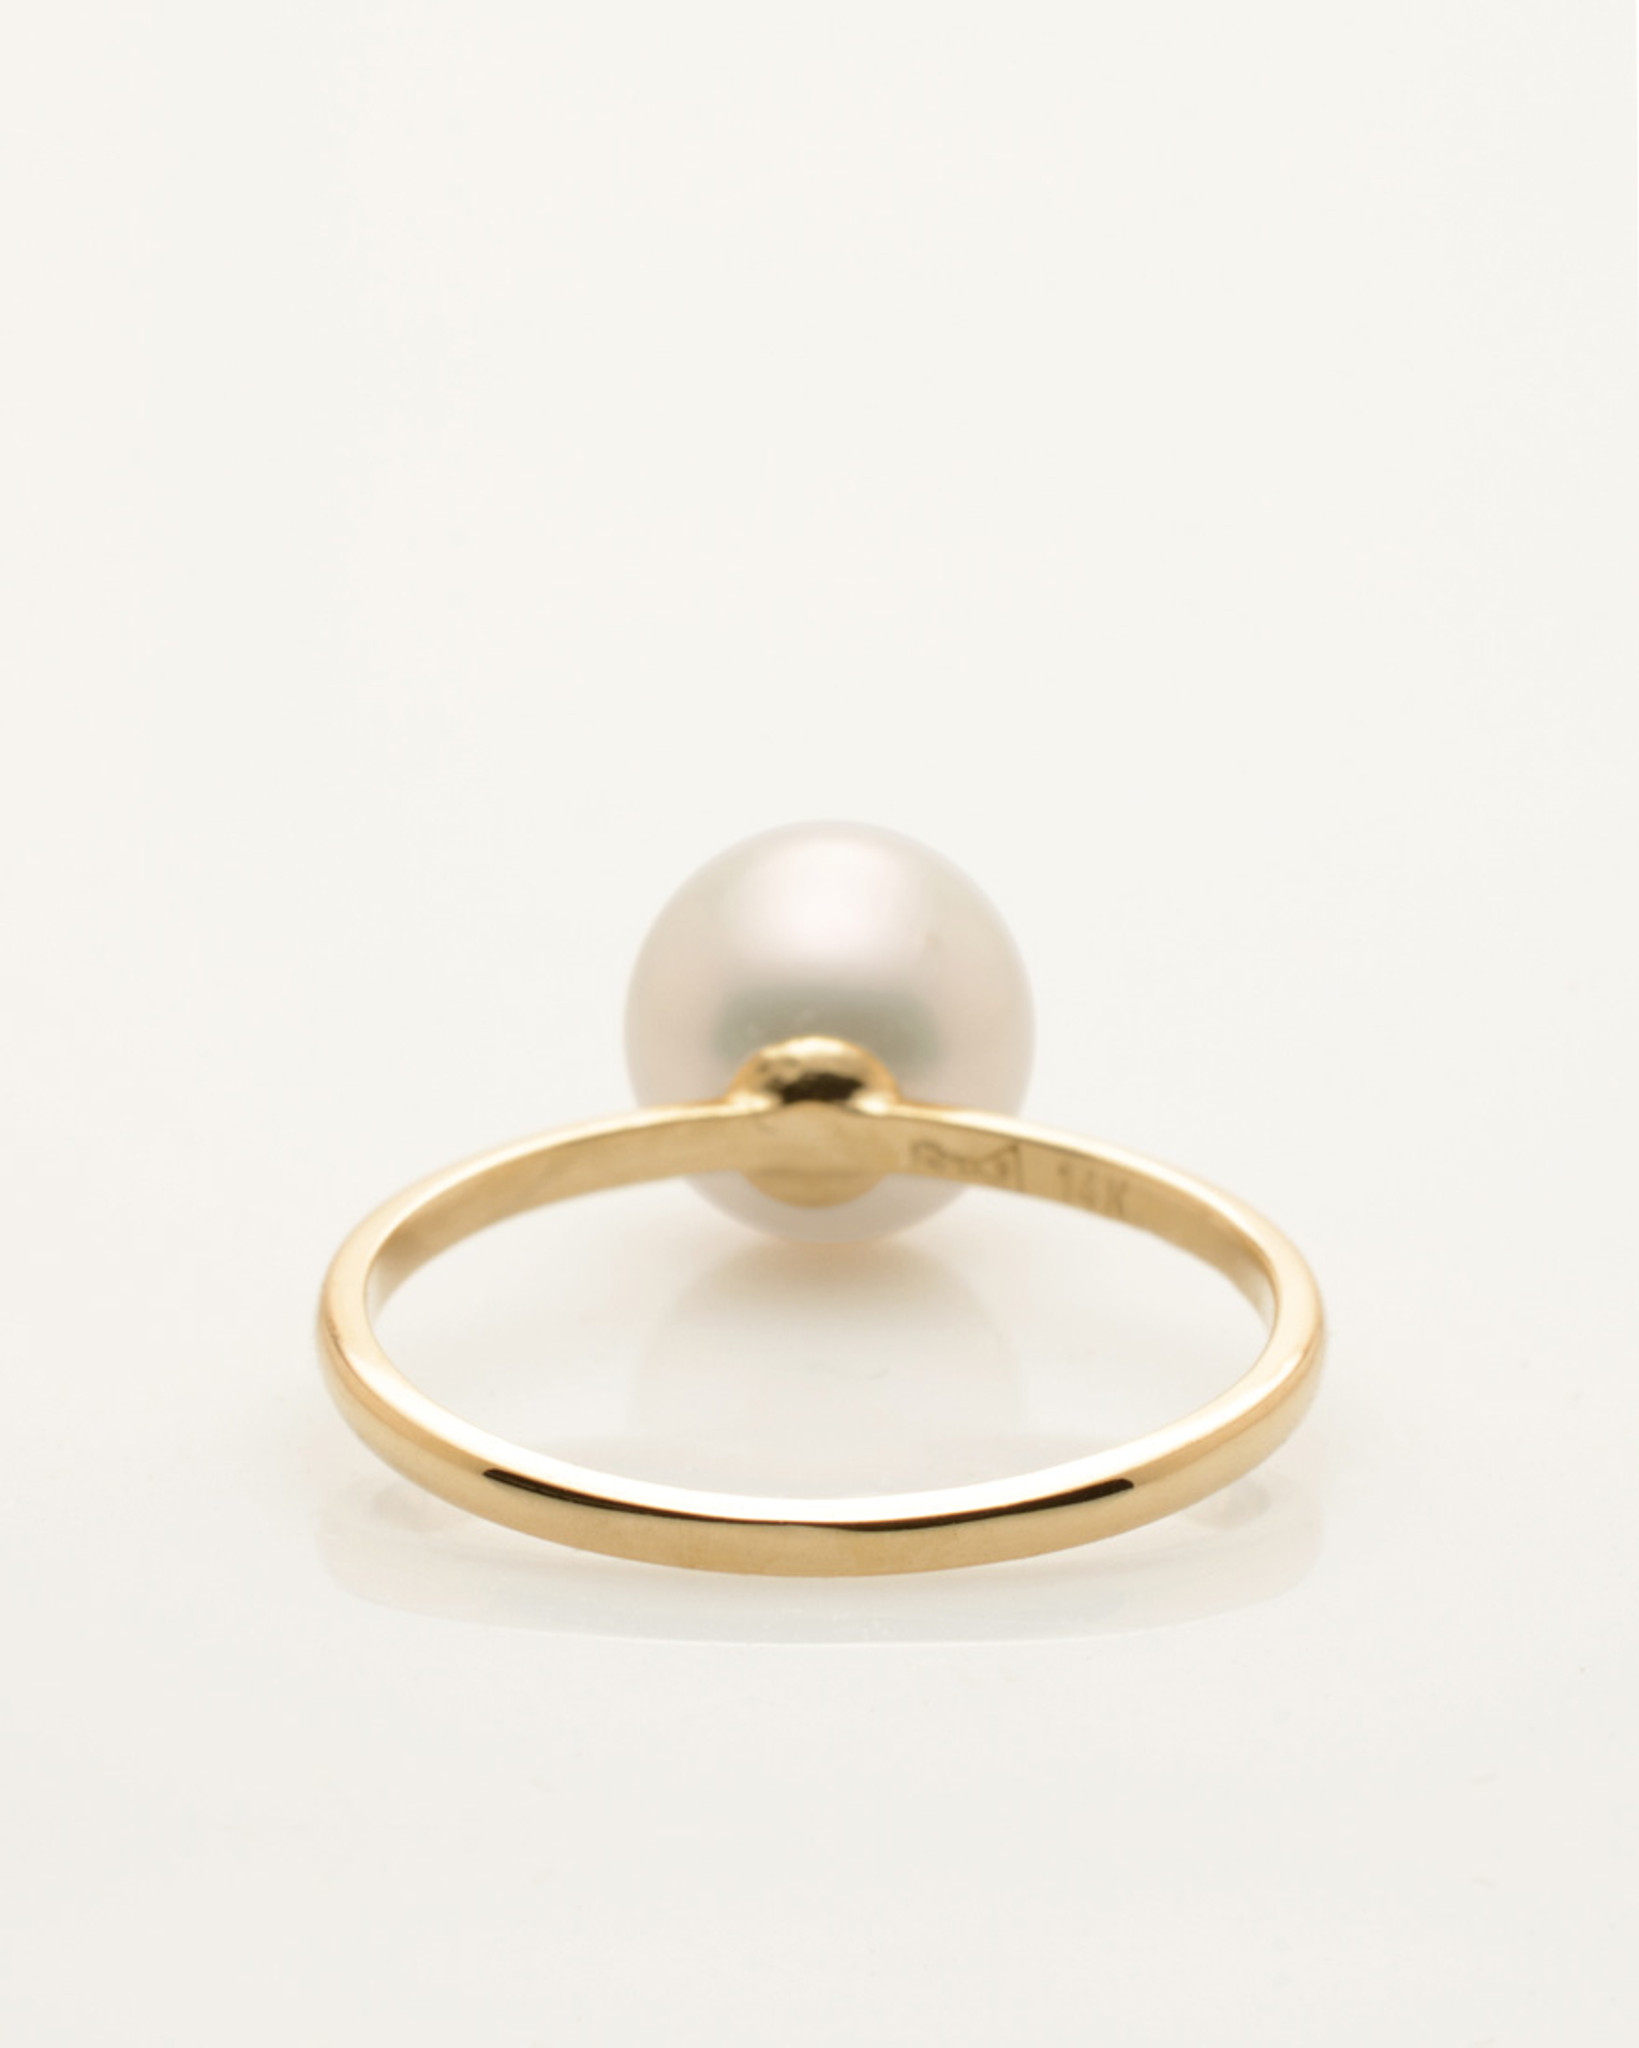 Back view of Cultured Freshwater Pearl Ring in 14k Gold by Nektar De Stagni (8-9 mm. Size 5-6-7)